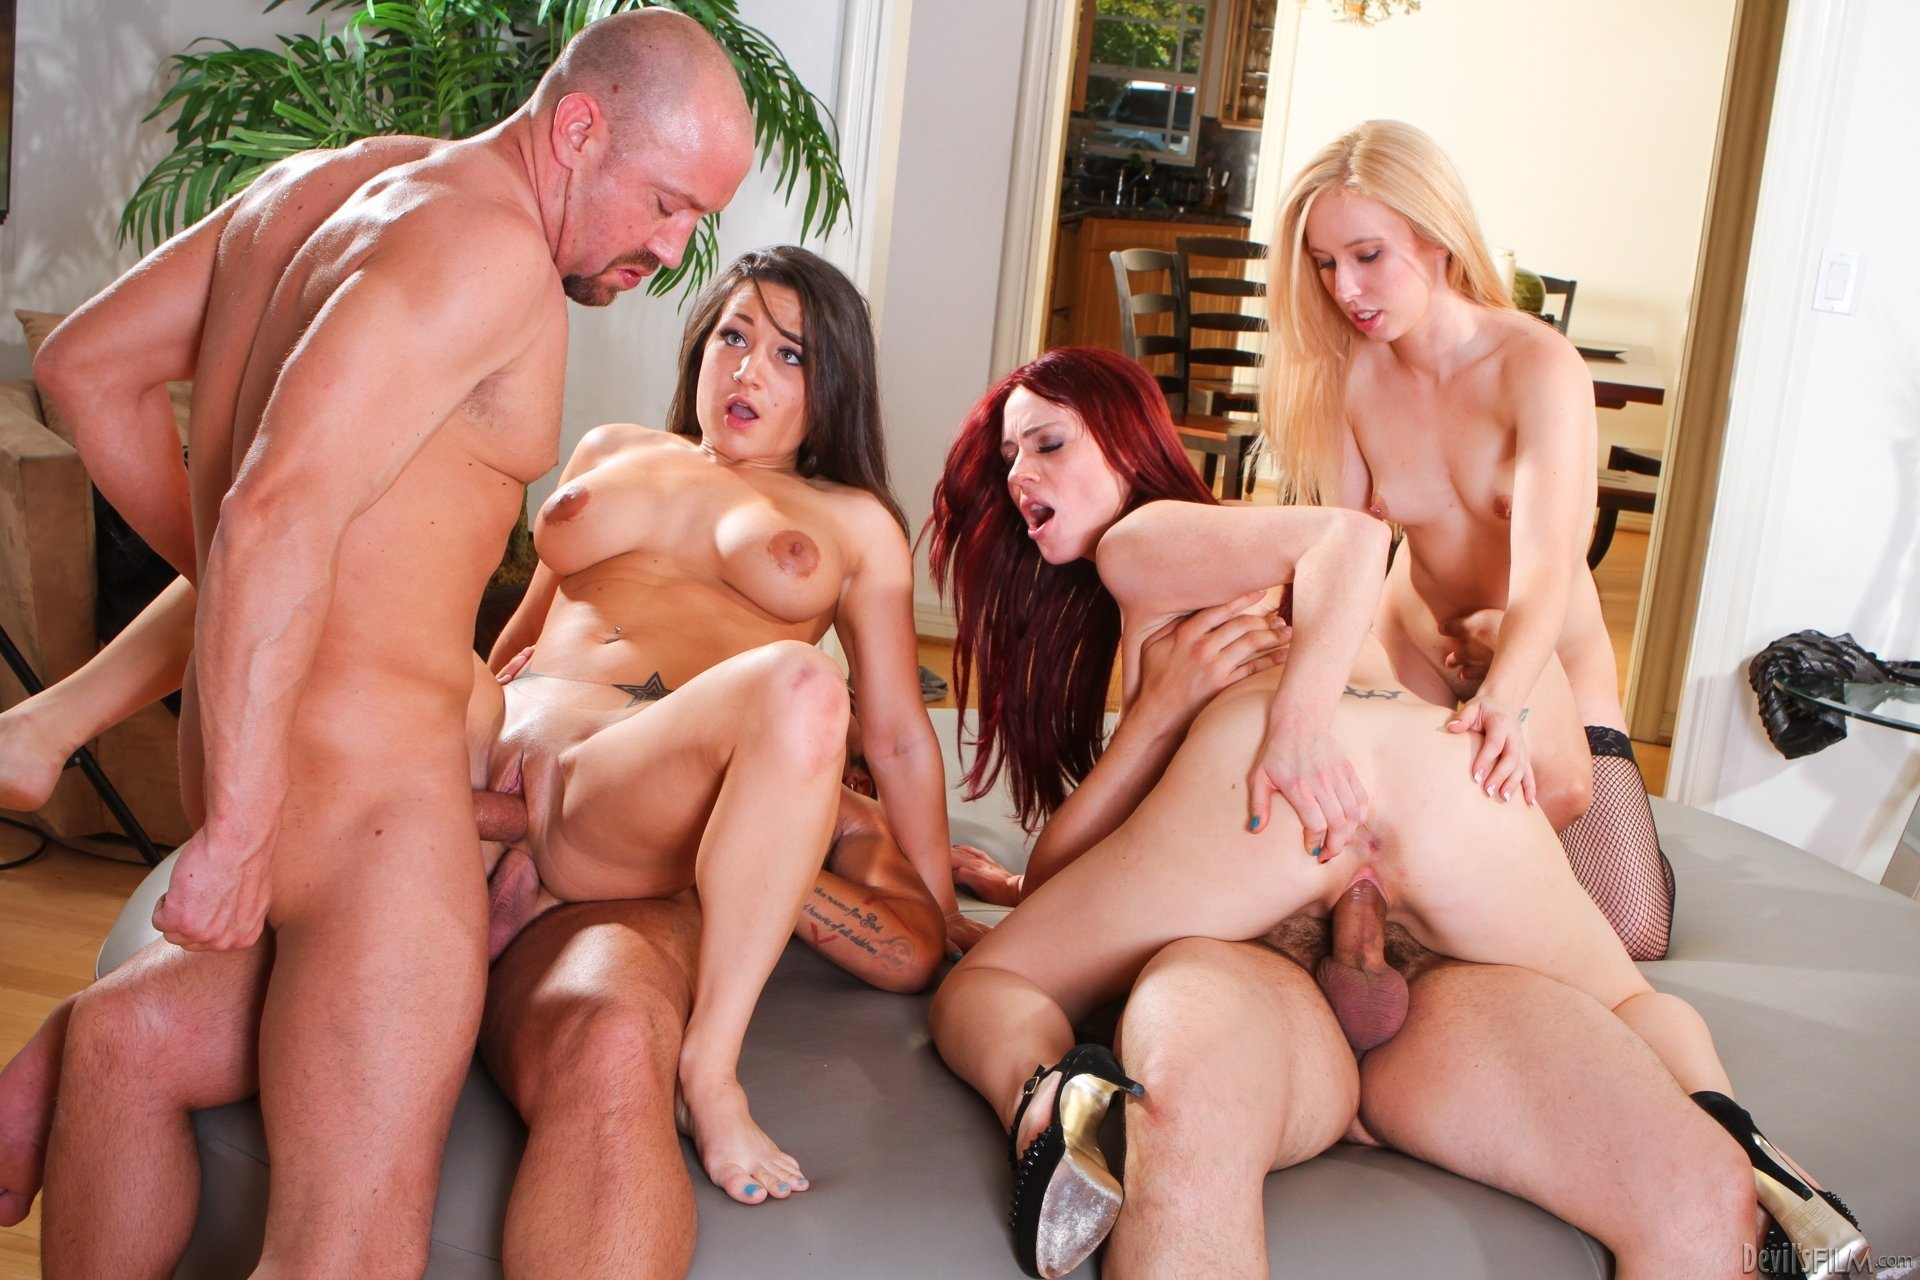 Giant group sex orgy fuckfest with tons of beautiful women